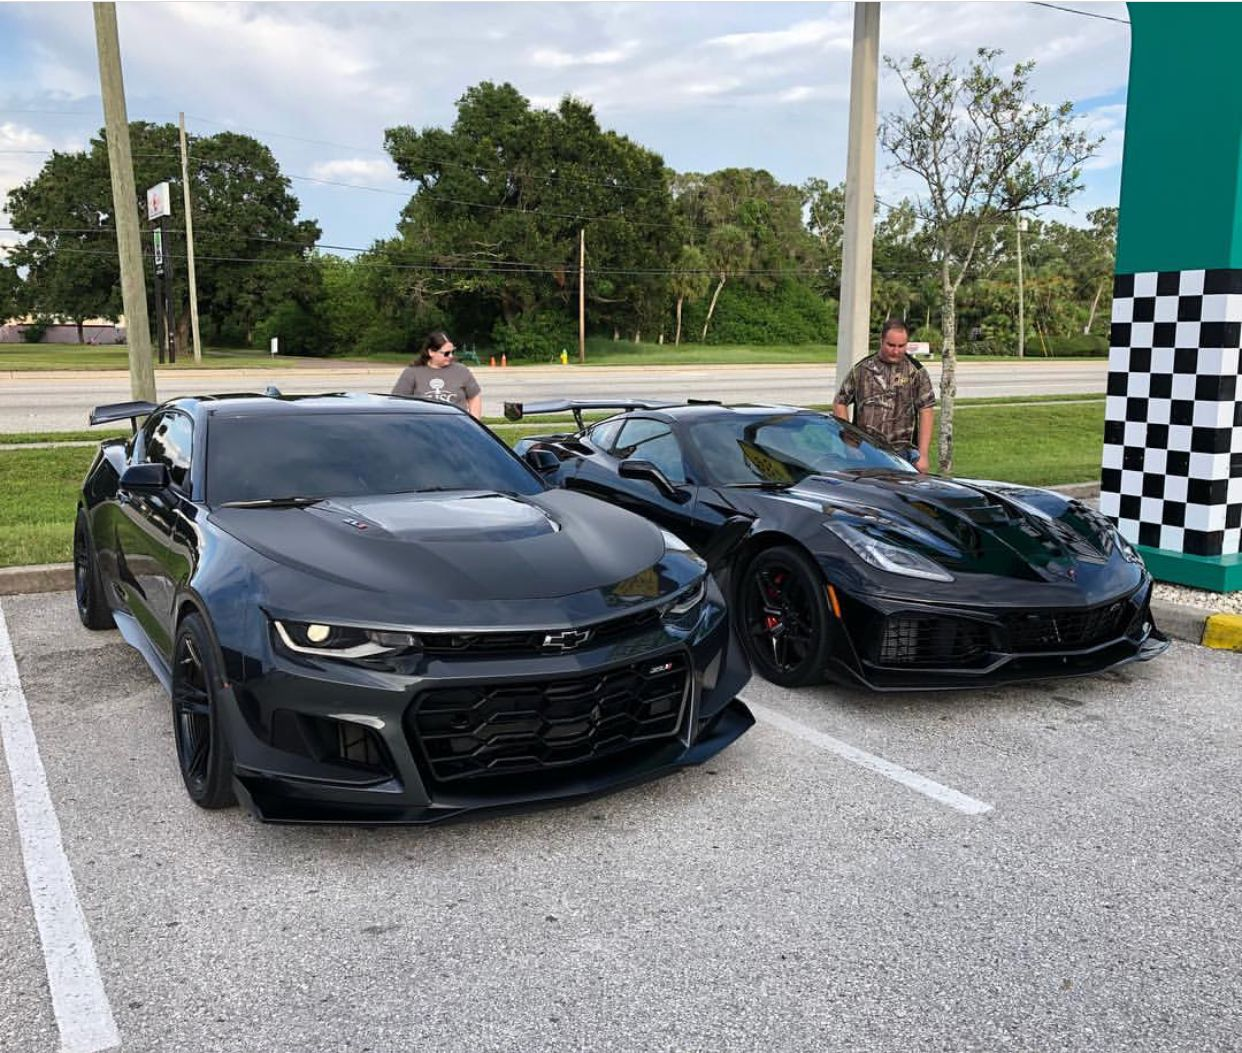 Chevrolet Camaro Zl1 1le Painted In Nightfall Gray Metallic Next